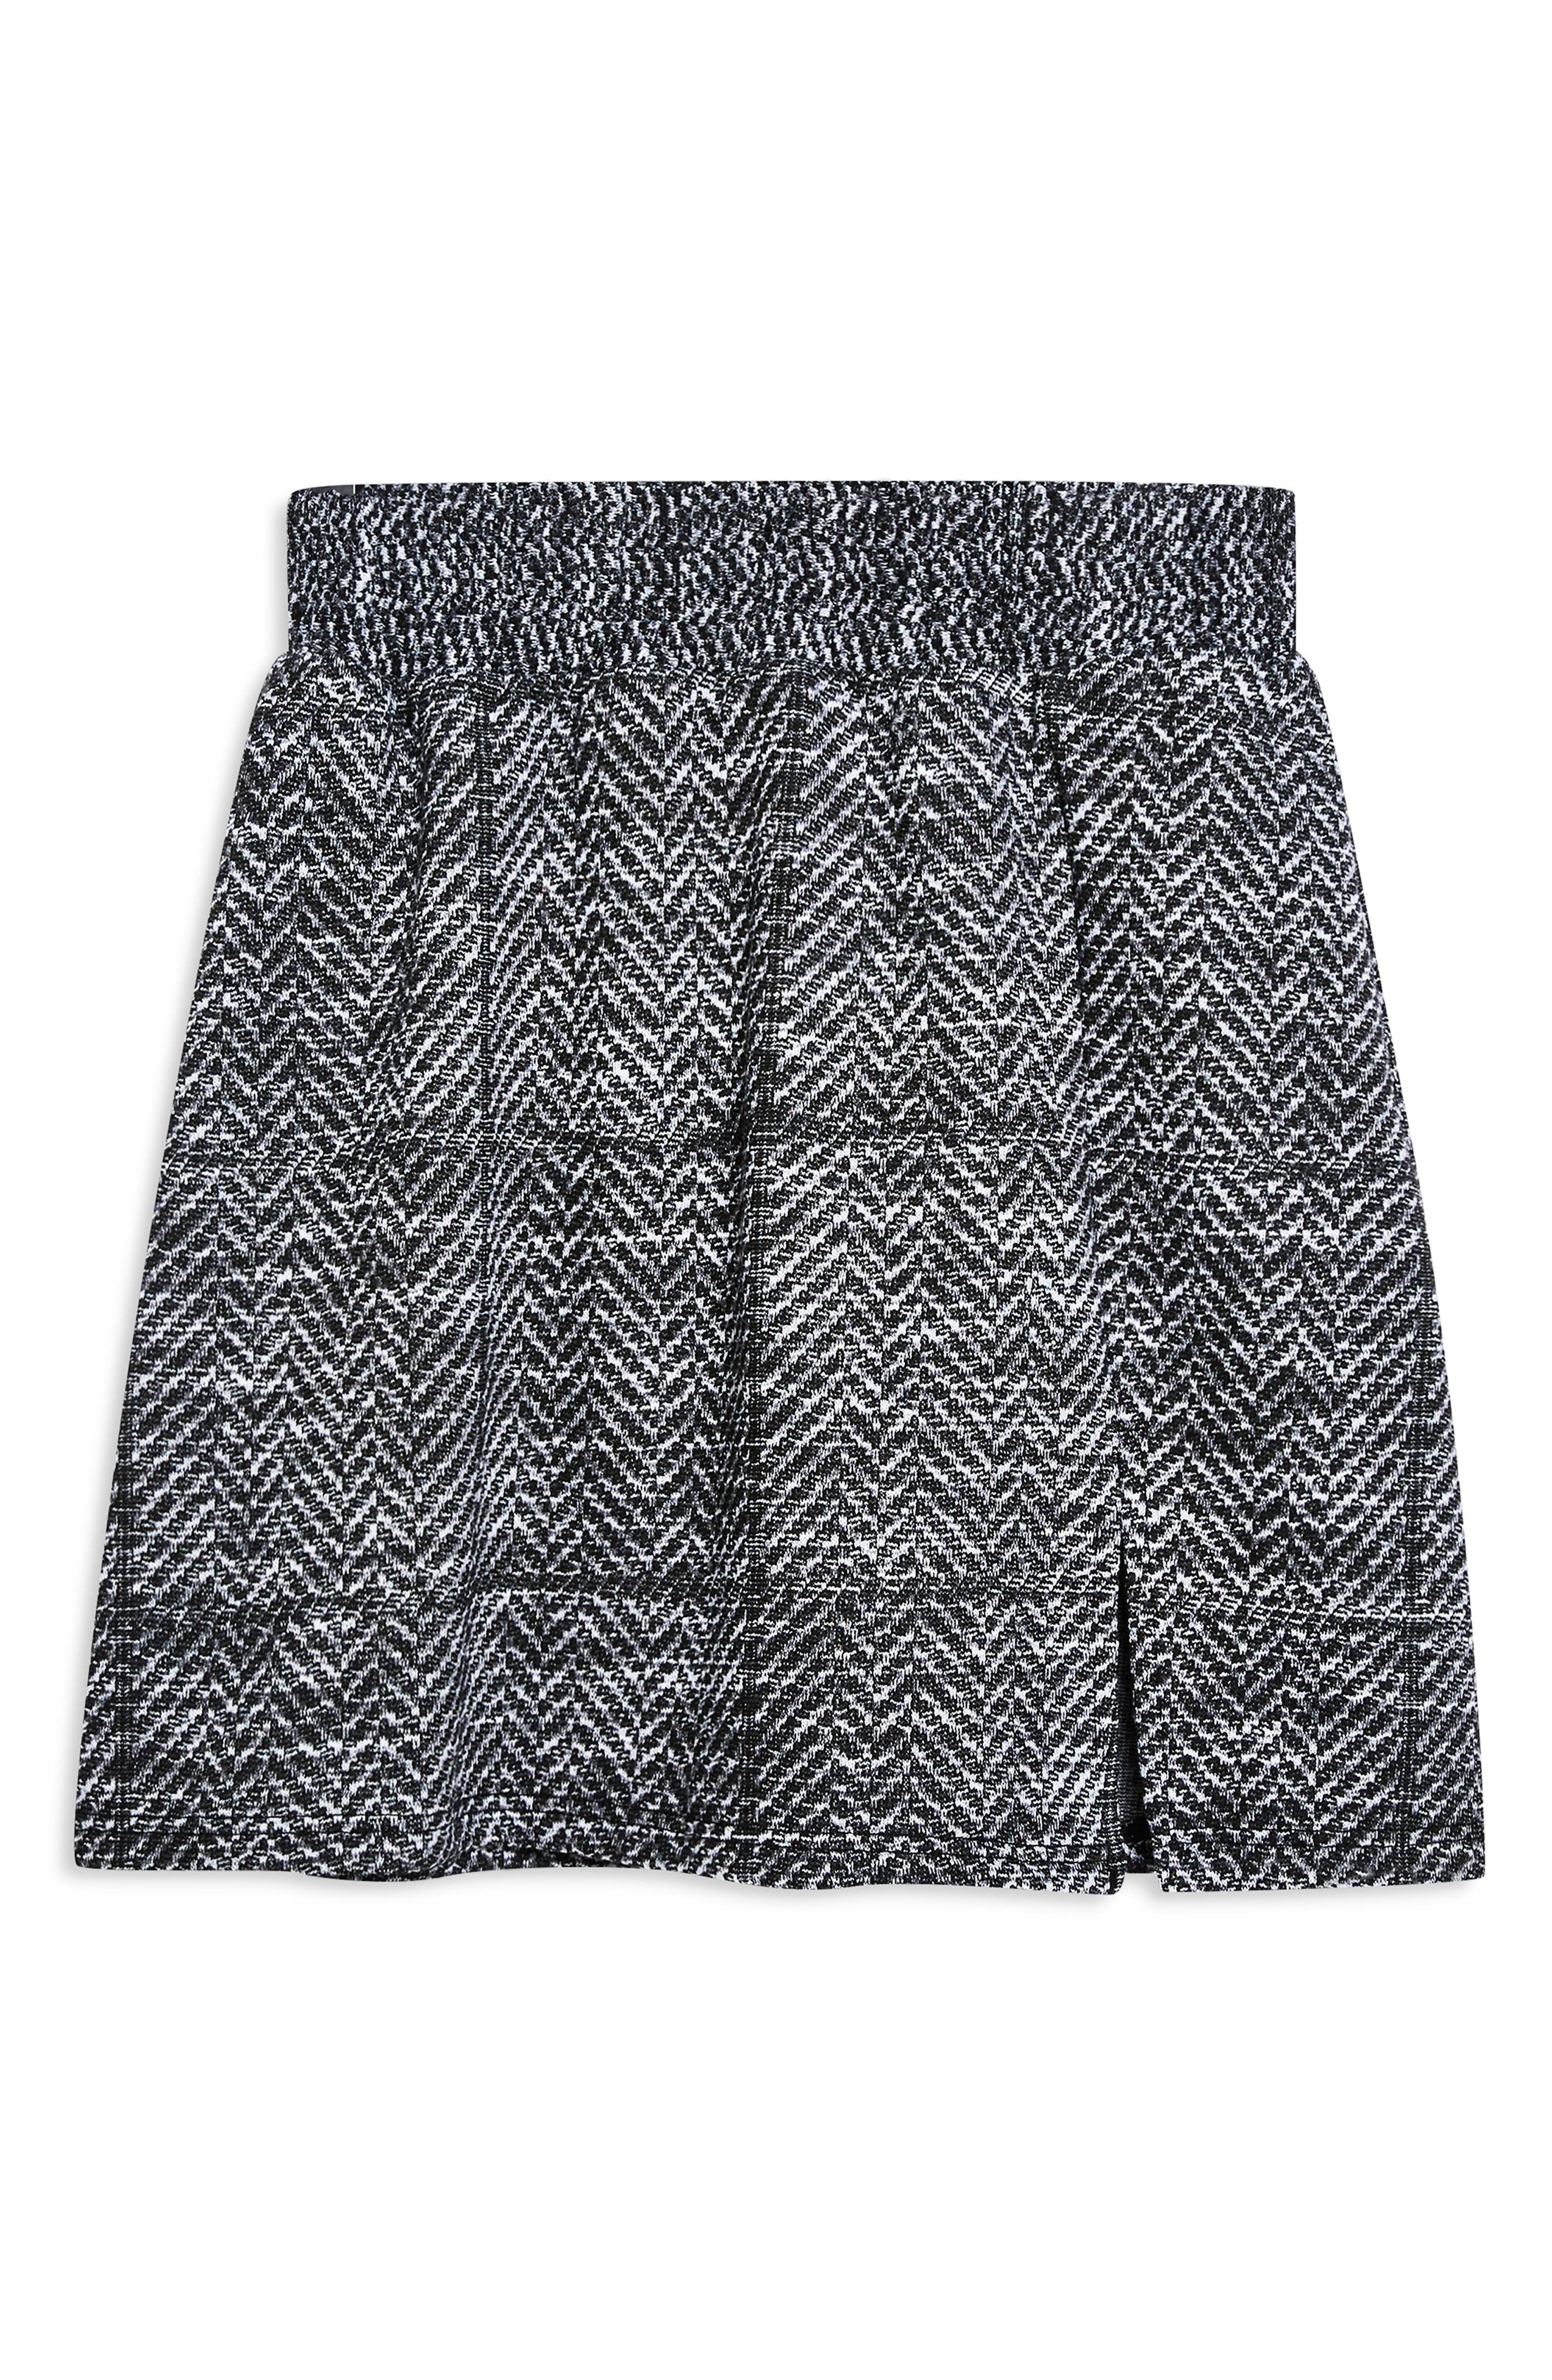 Herringbone Miniskirt,                             Alternate thumbnail 3, color,                             020